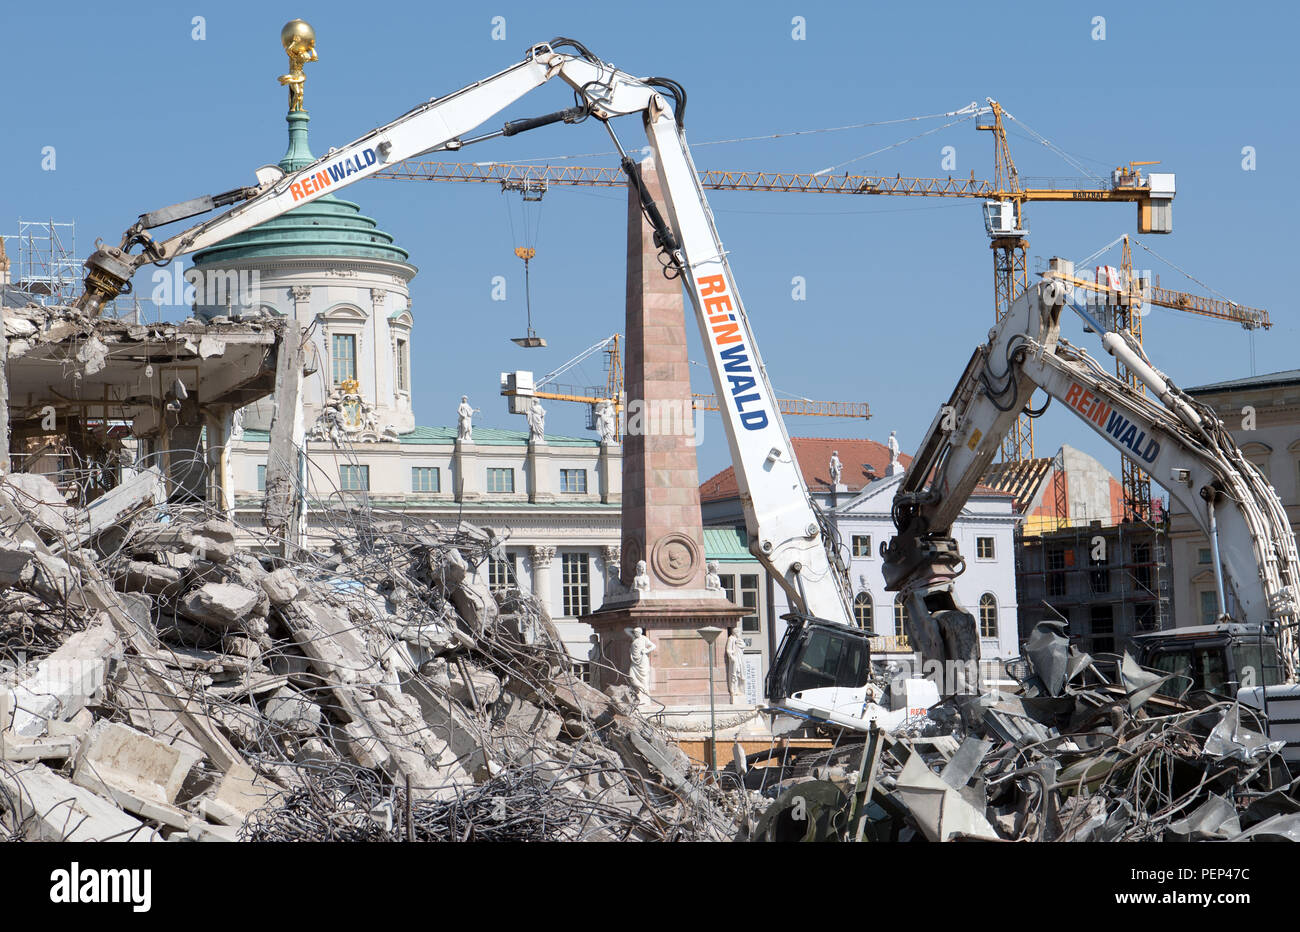 16 August 2018, Germany, Potsdam: Excavators demolish the last remains of the building of the old University of Applied Sciences against the backdrop of the Old Town Hall. Construction of new buildings on the site is scheduled to begin in 2019 and the site is scheduled for completion in 2021. Photo: Ralf Hirschberger/dpa - Stock Image